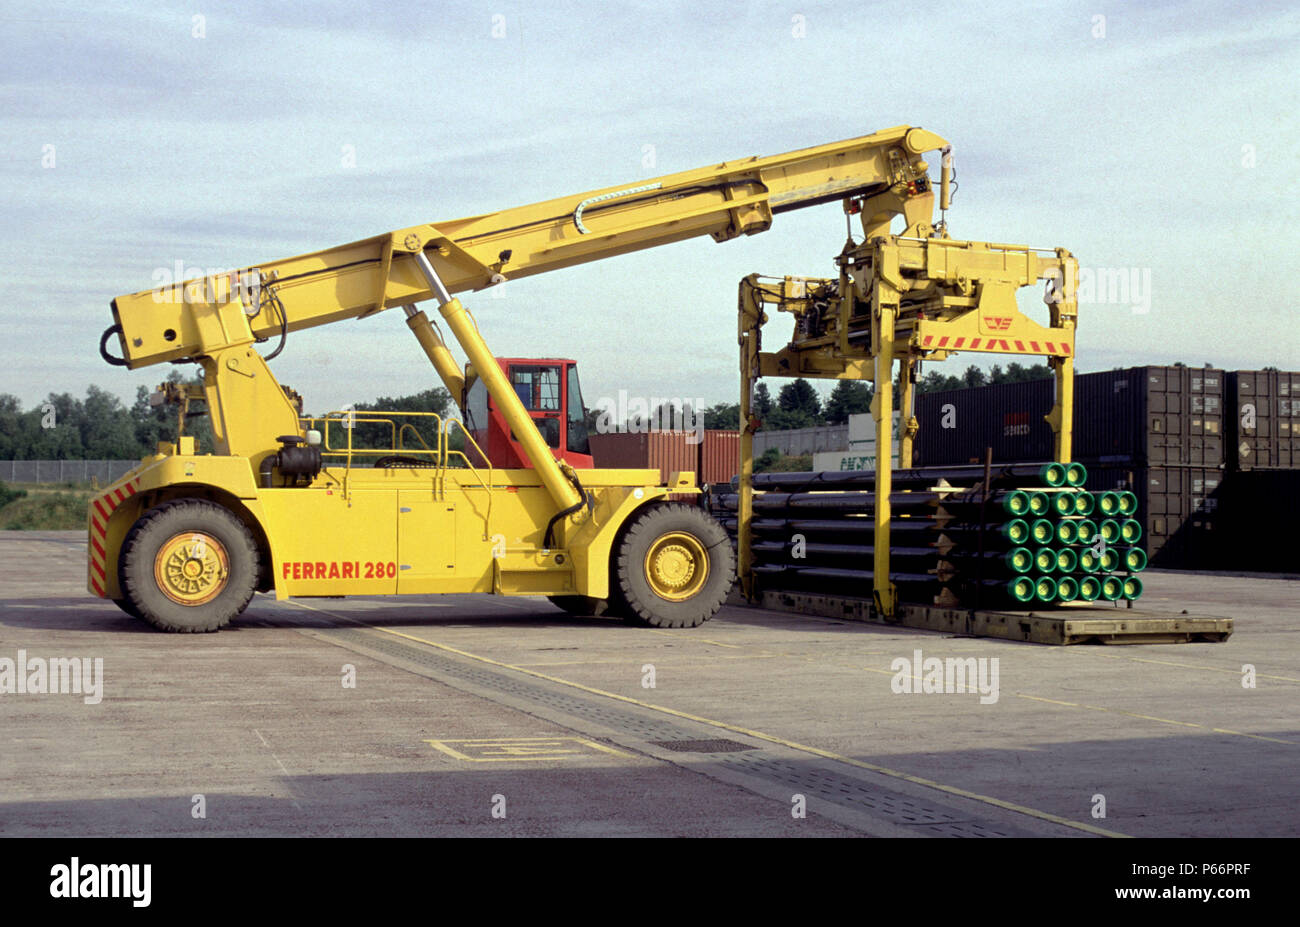 Giant lift trucks are used to load container cargo at the EWS freight terminal at Mossend near Motherwell, Strathclyde. August 2001 Stock Photo